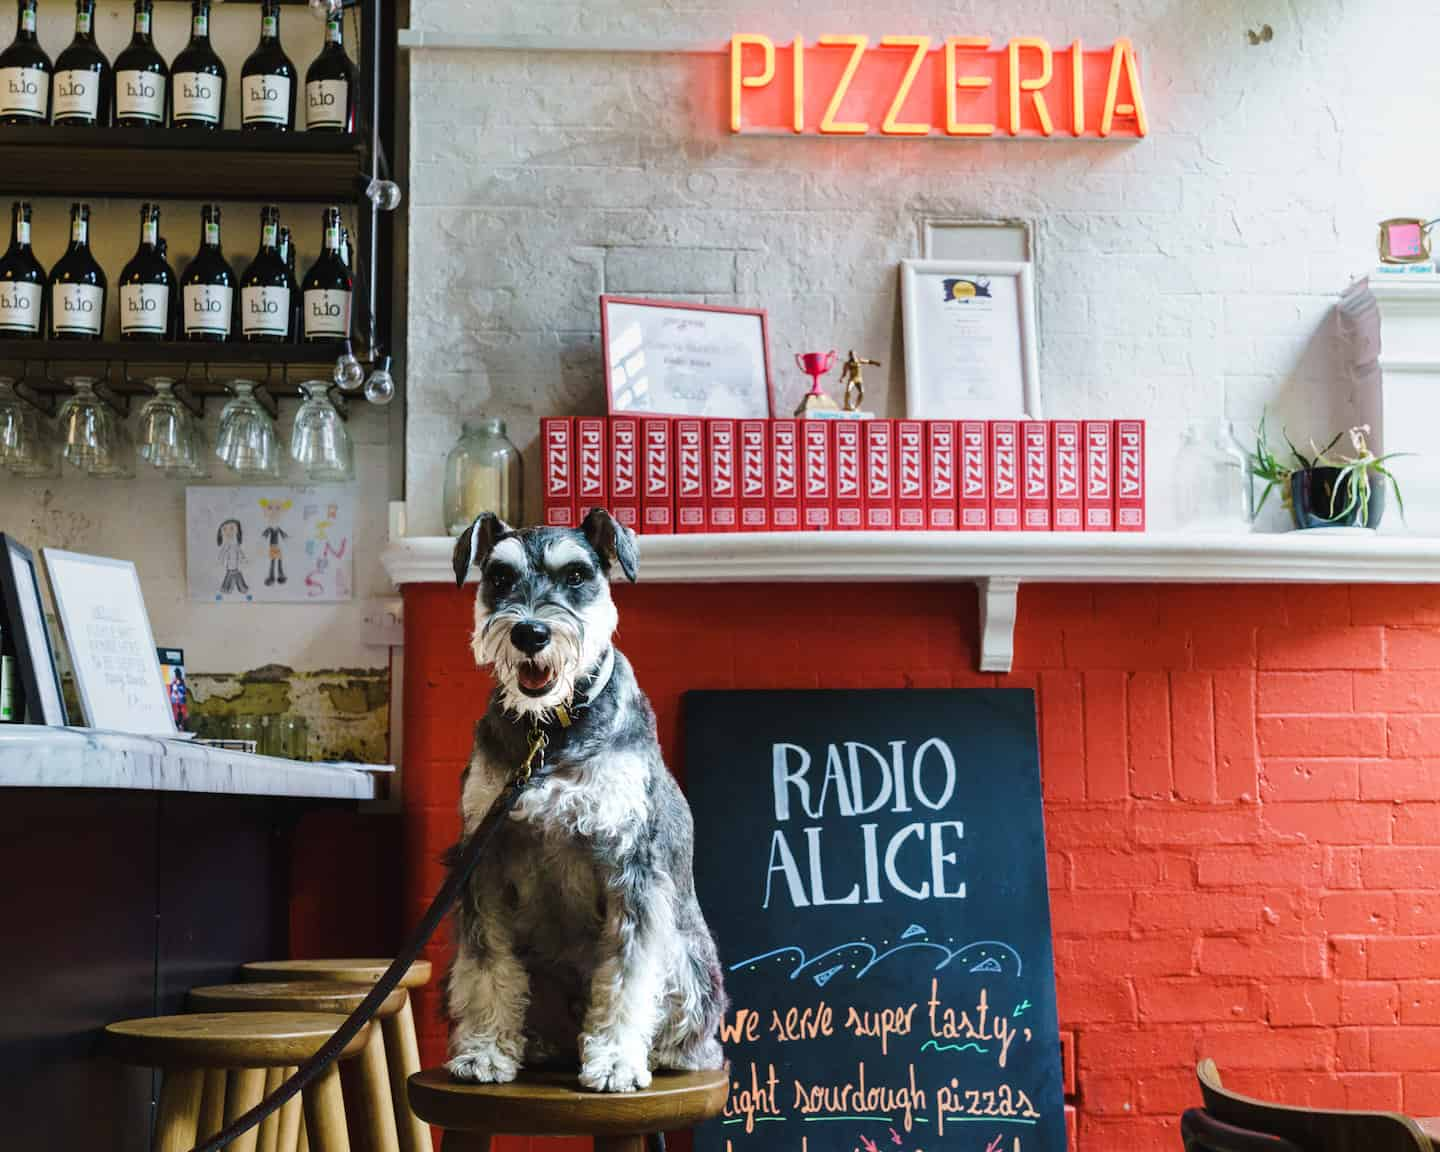 My Dog Friendly London By Rusty Red The Schnauzer | Dog Friendly Shoreditch and Hoxton Radio Alice 2